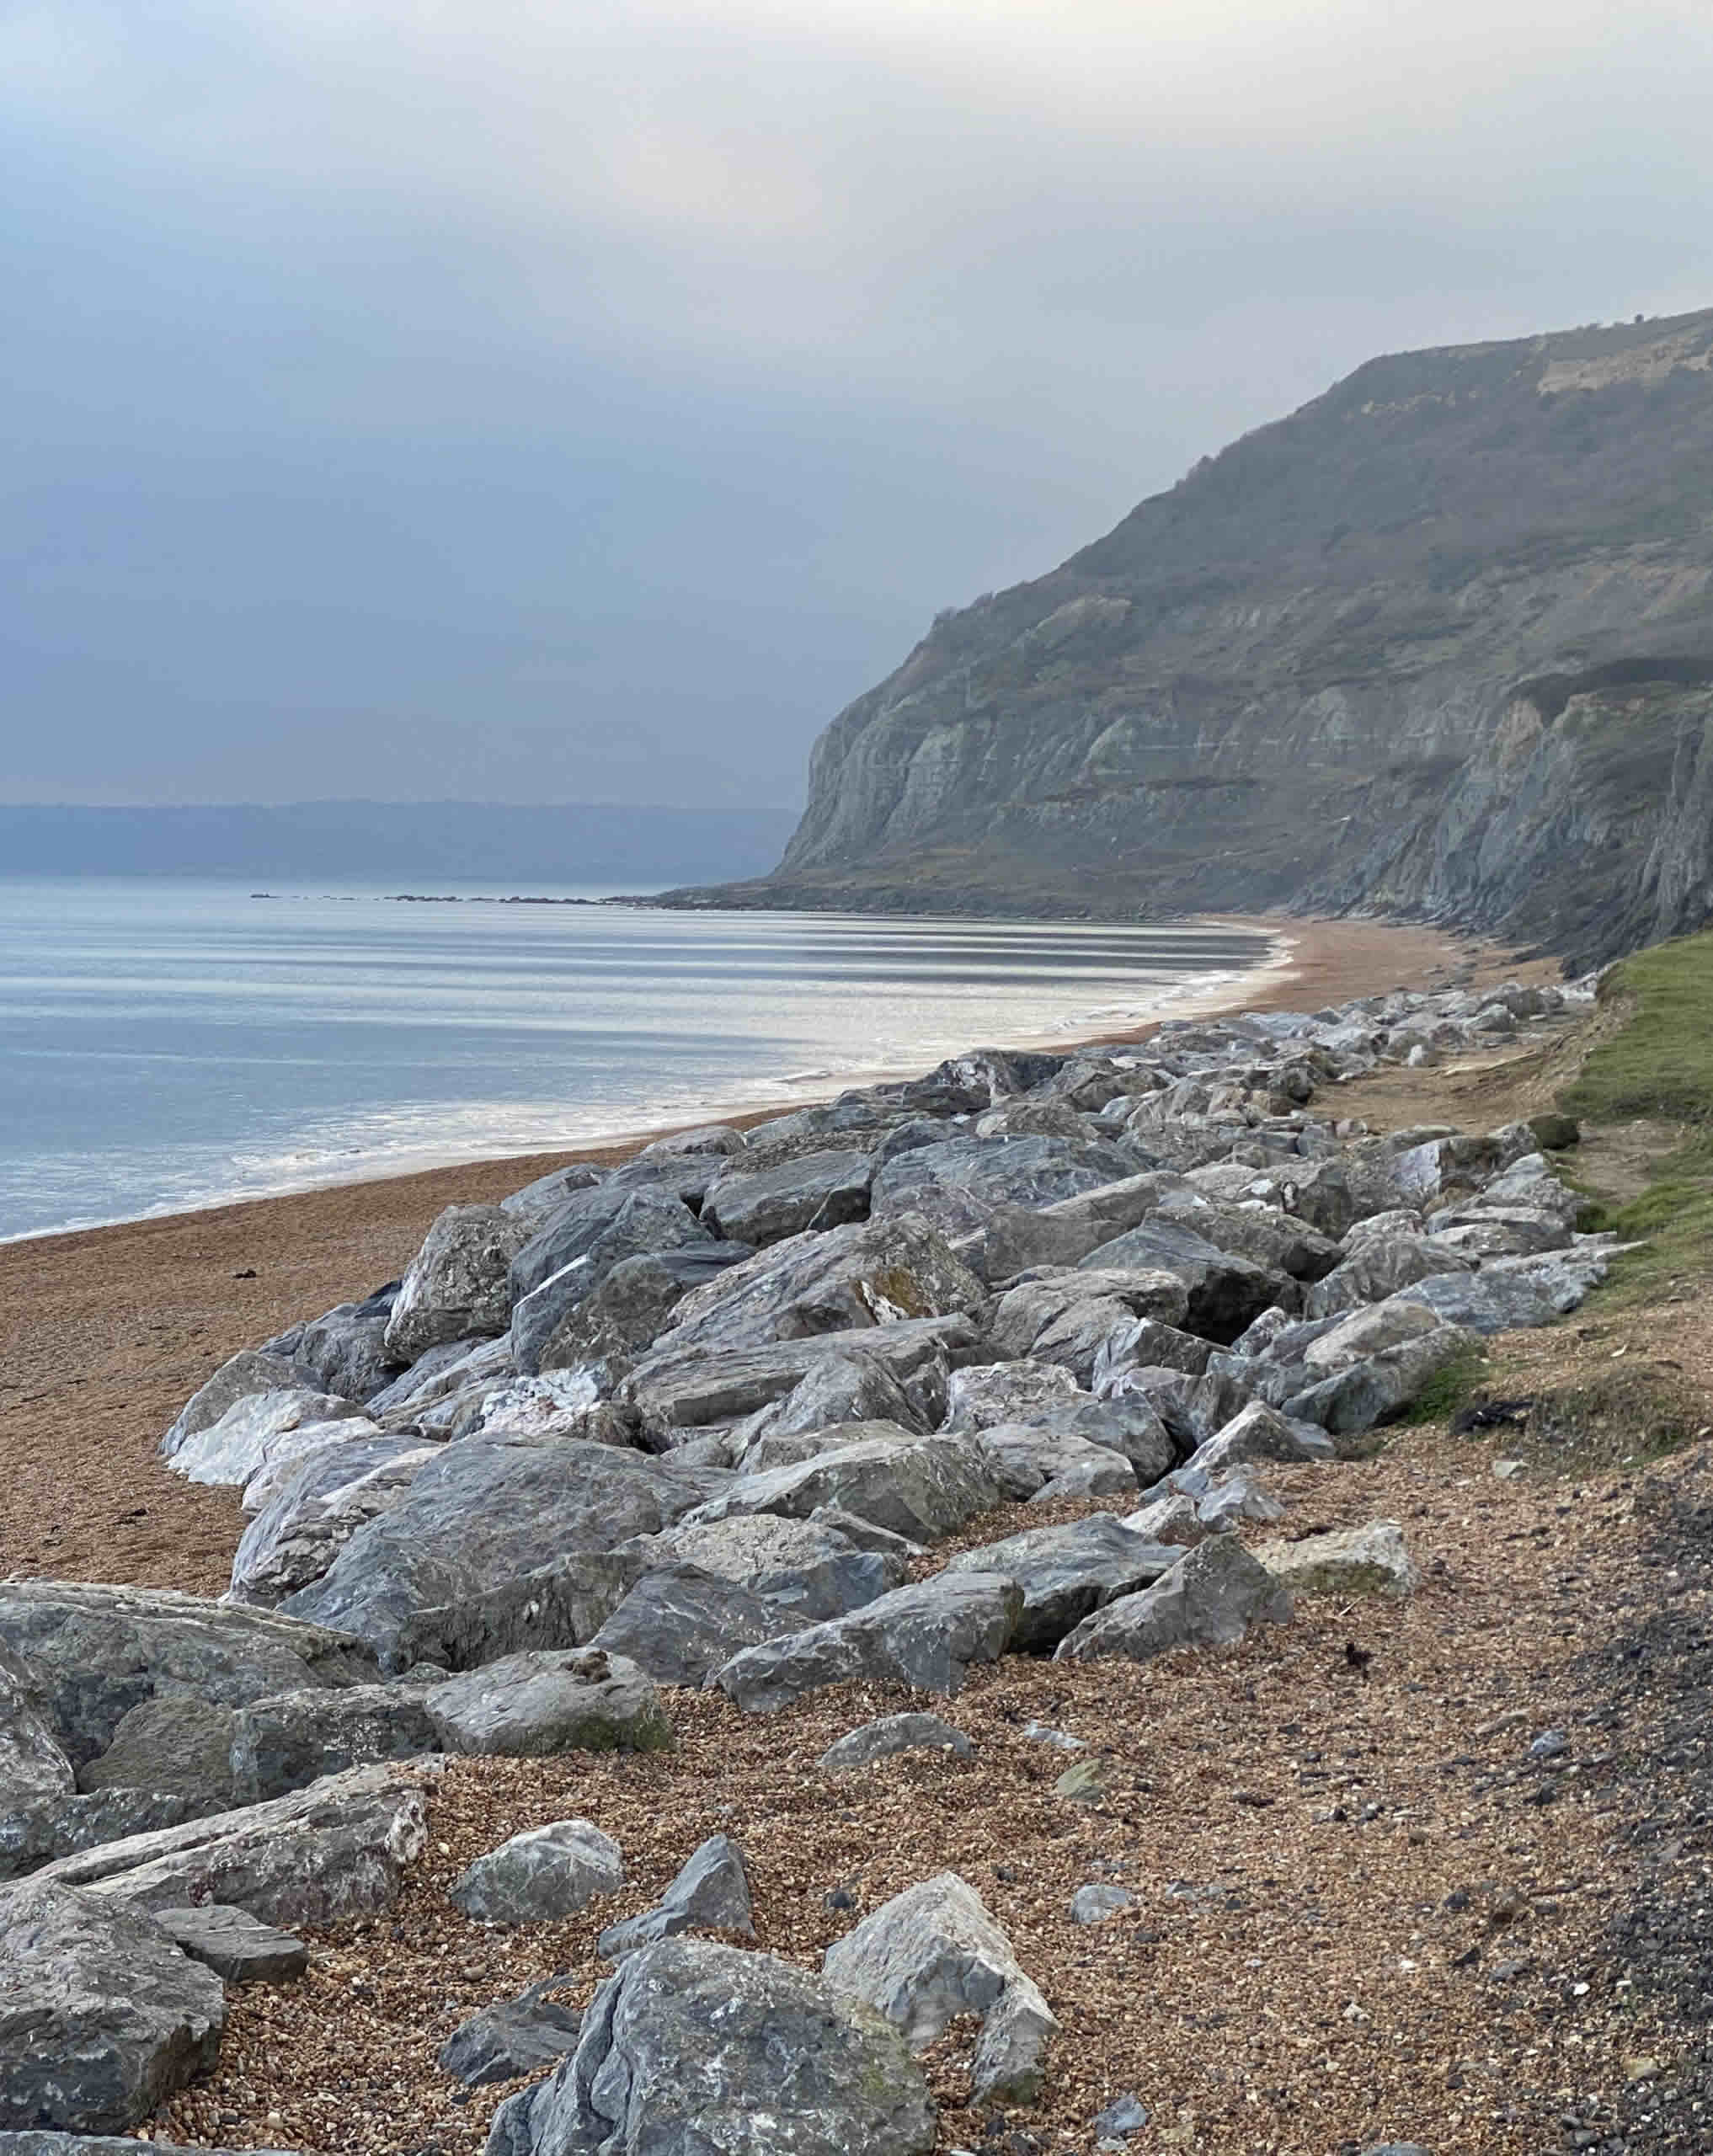 Seatown beach in Dorset